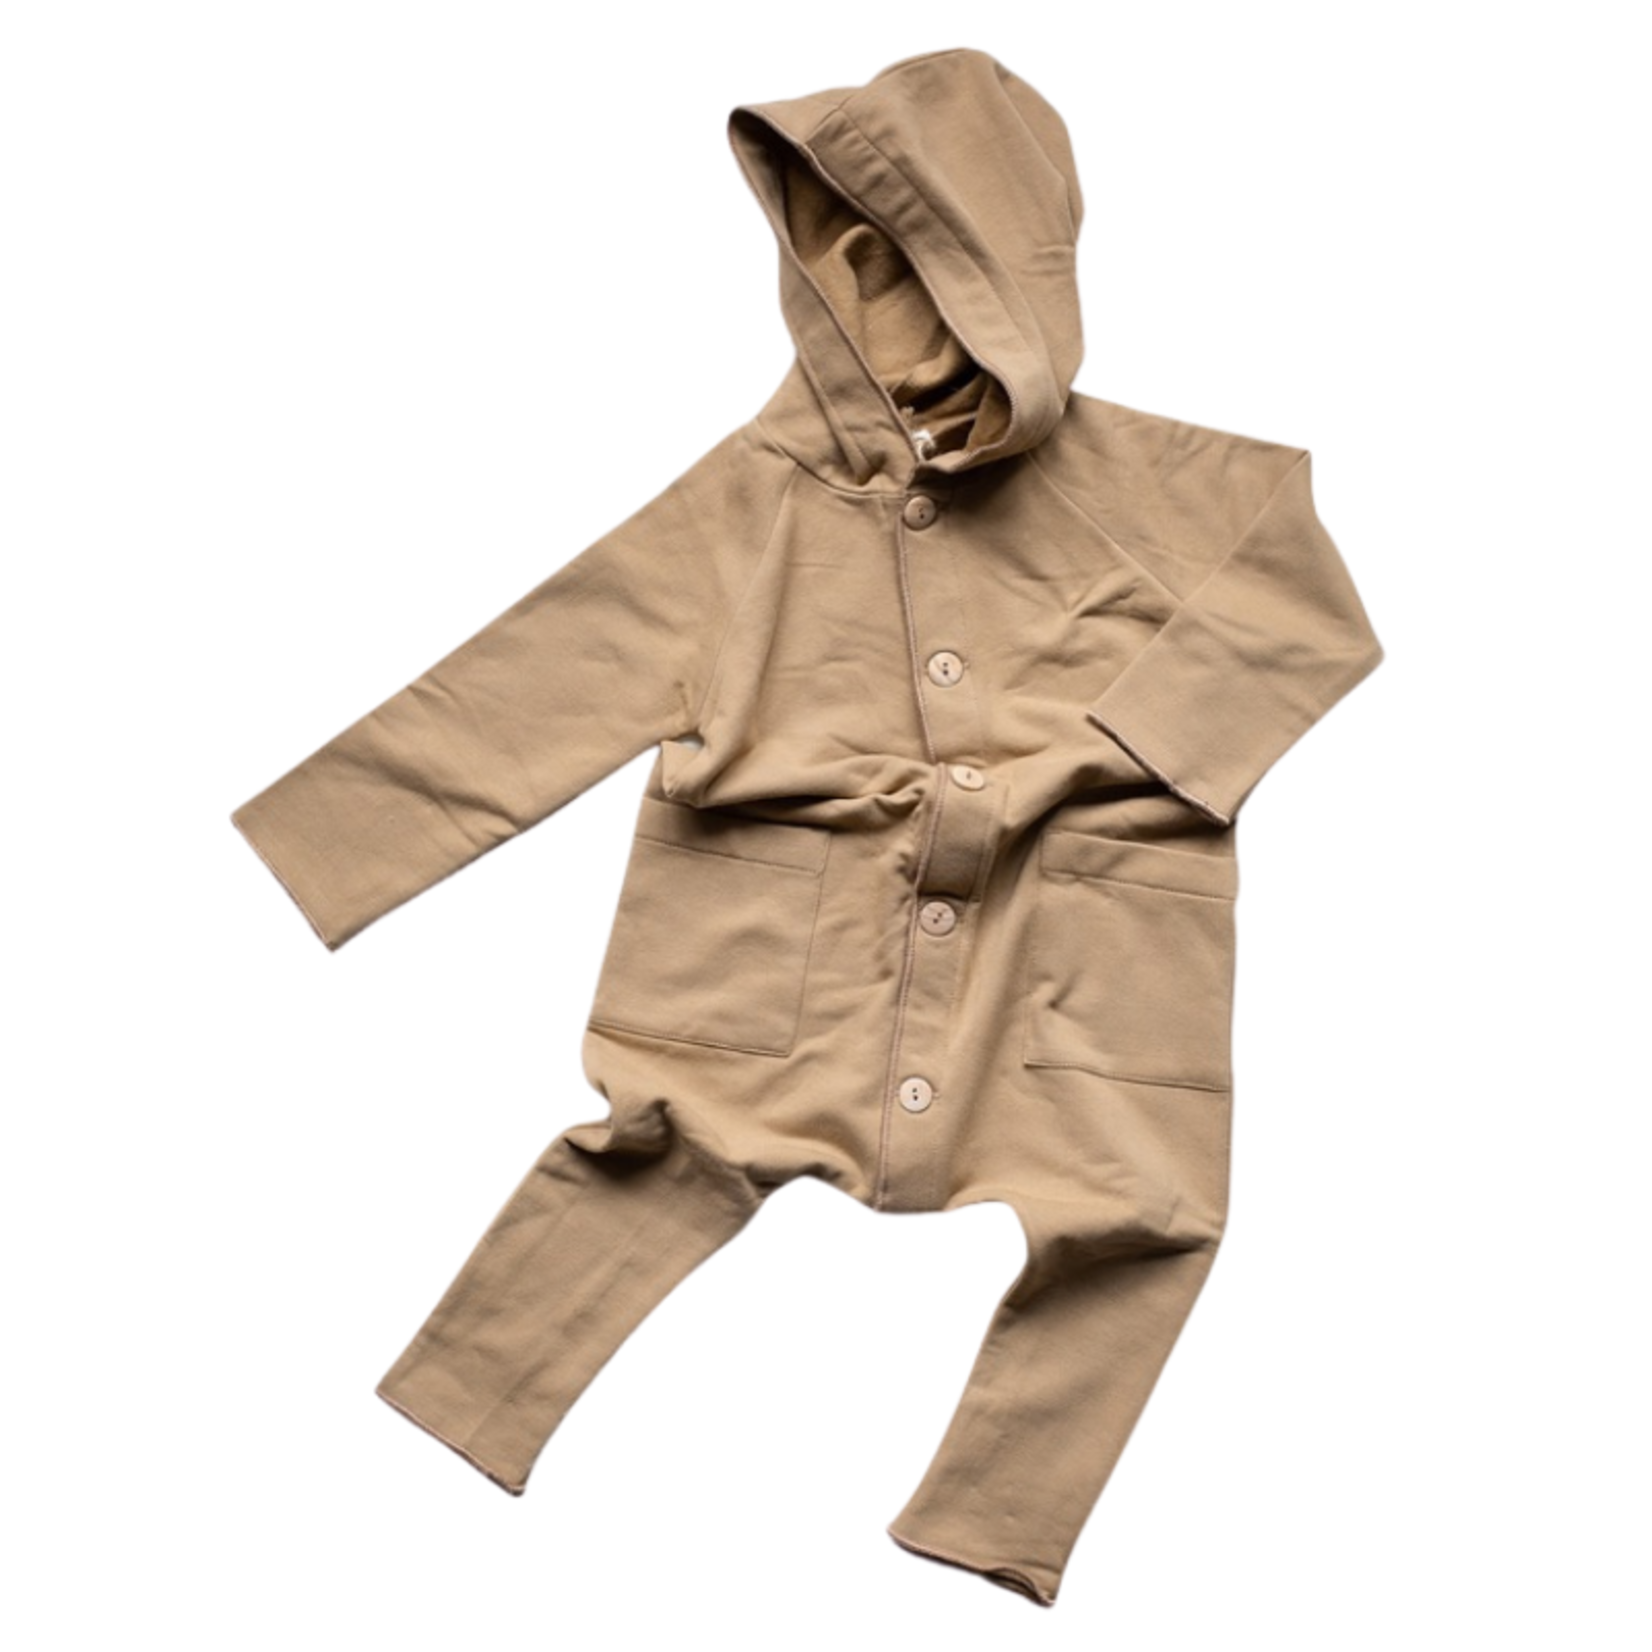 The Simple Folk The Forager Playsuit - Camel